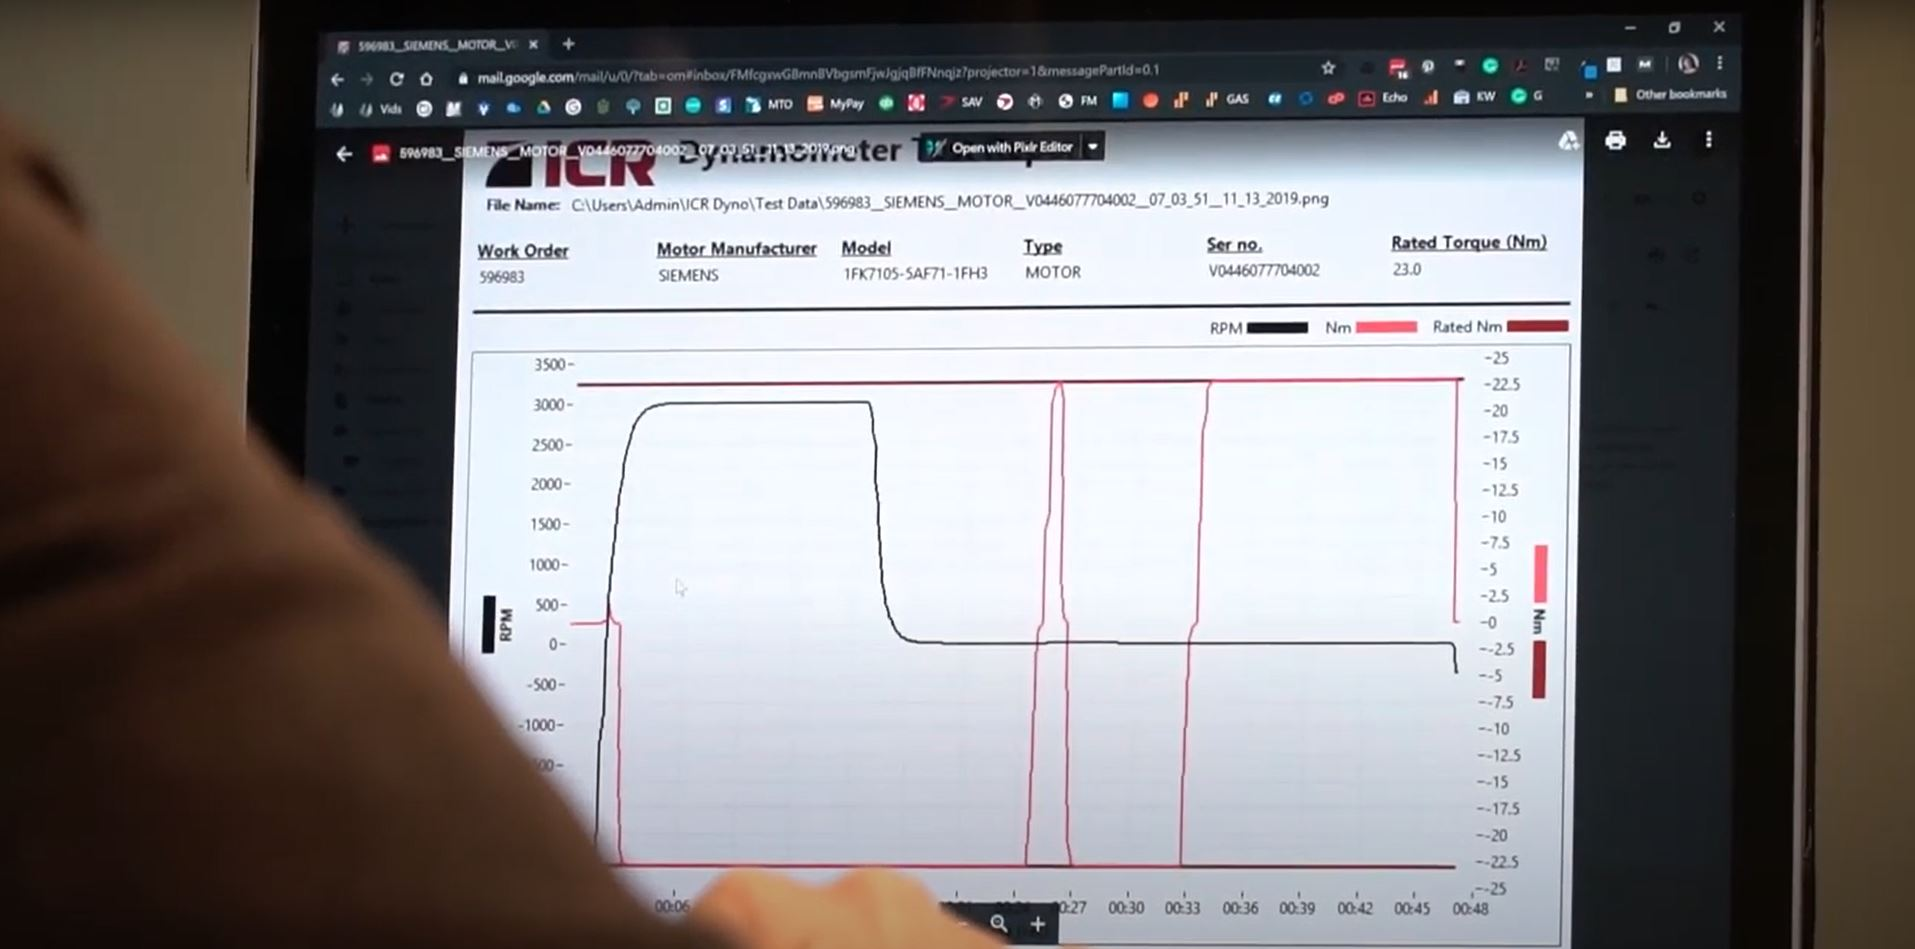 Dynamometer Test Report Showing RPM and Torque Curves